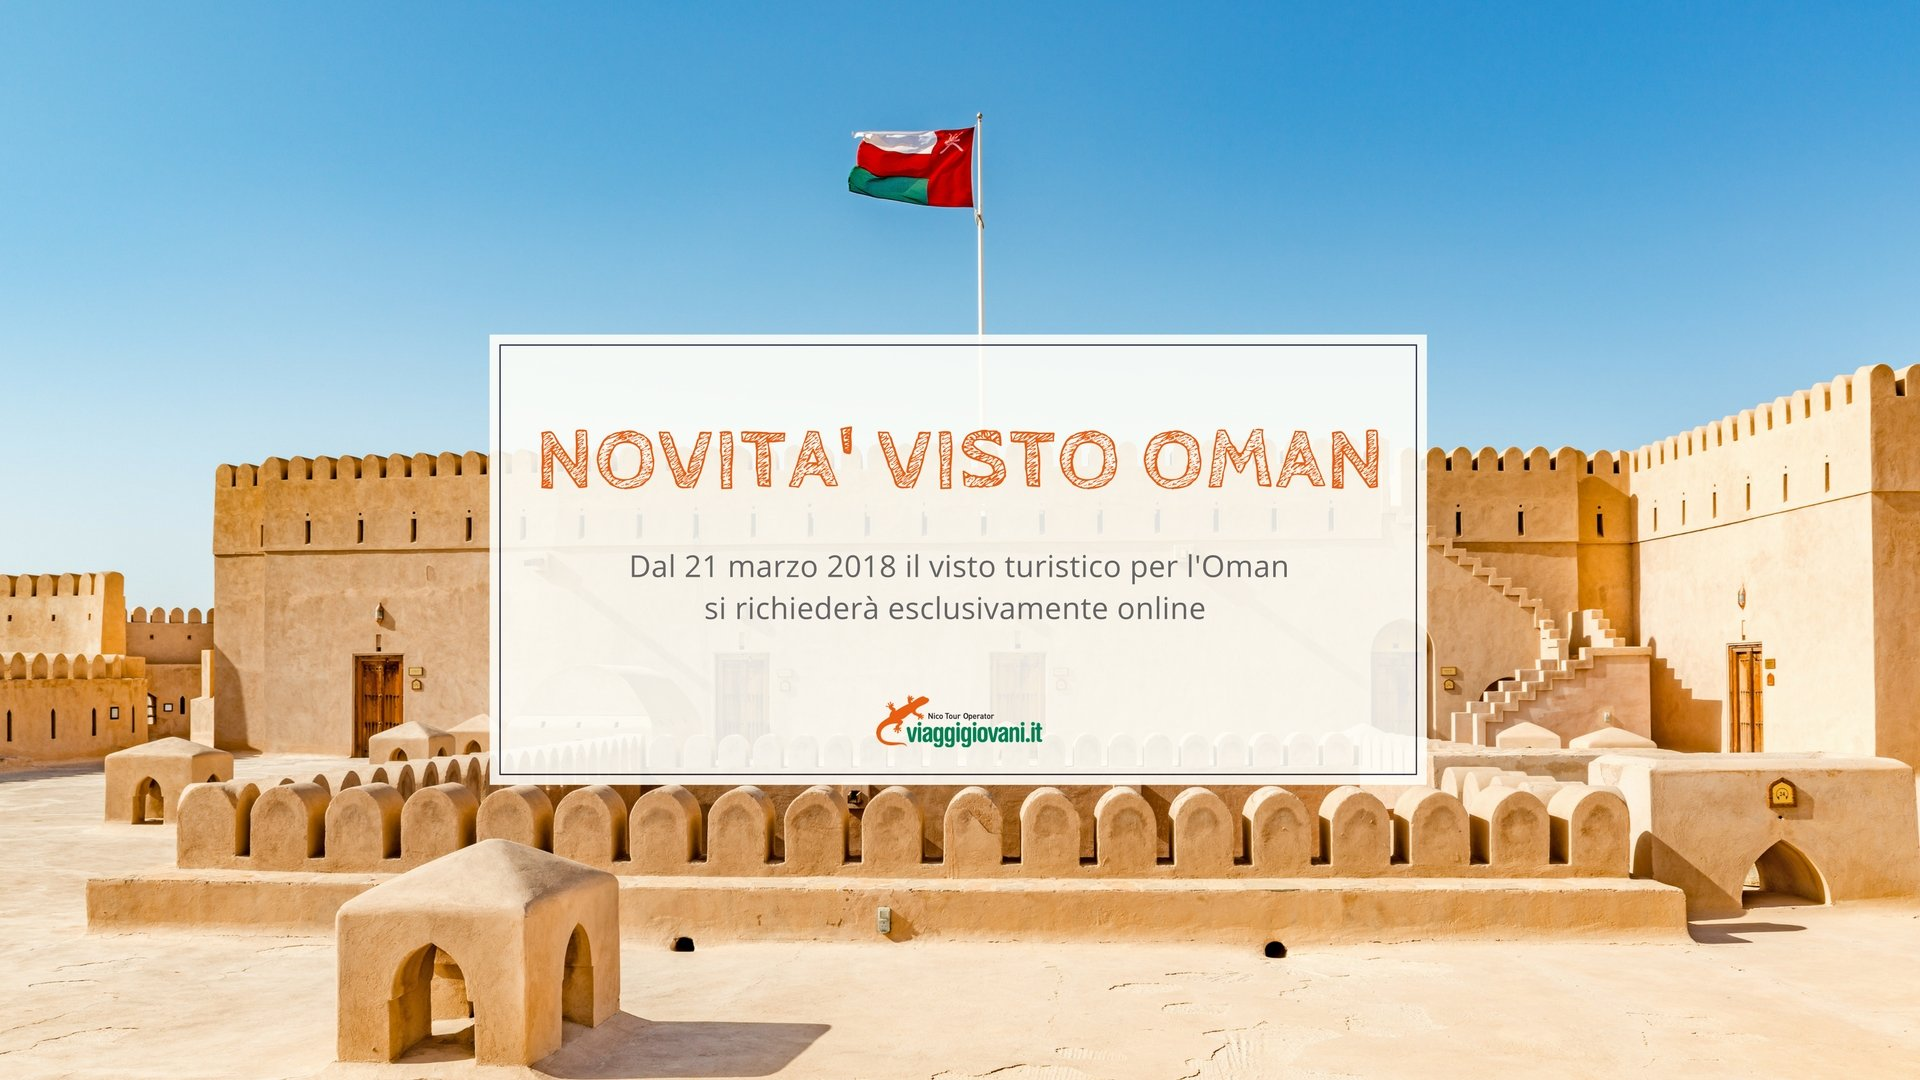 Visto Turistico Oman, nuove procedure